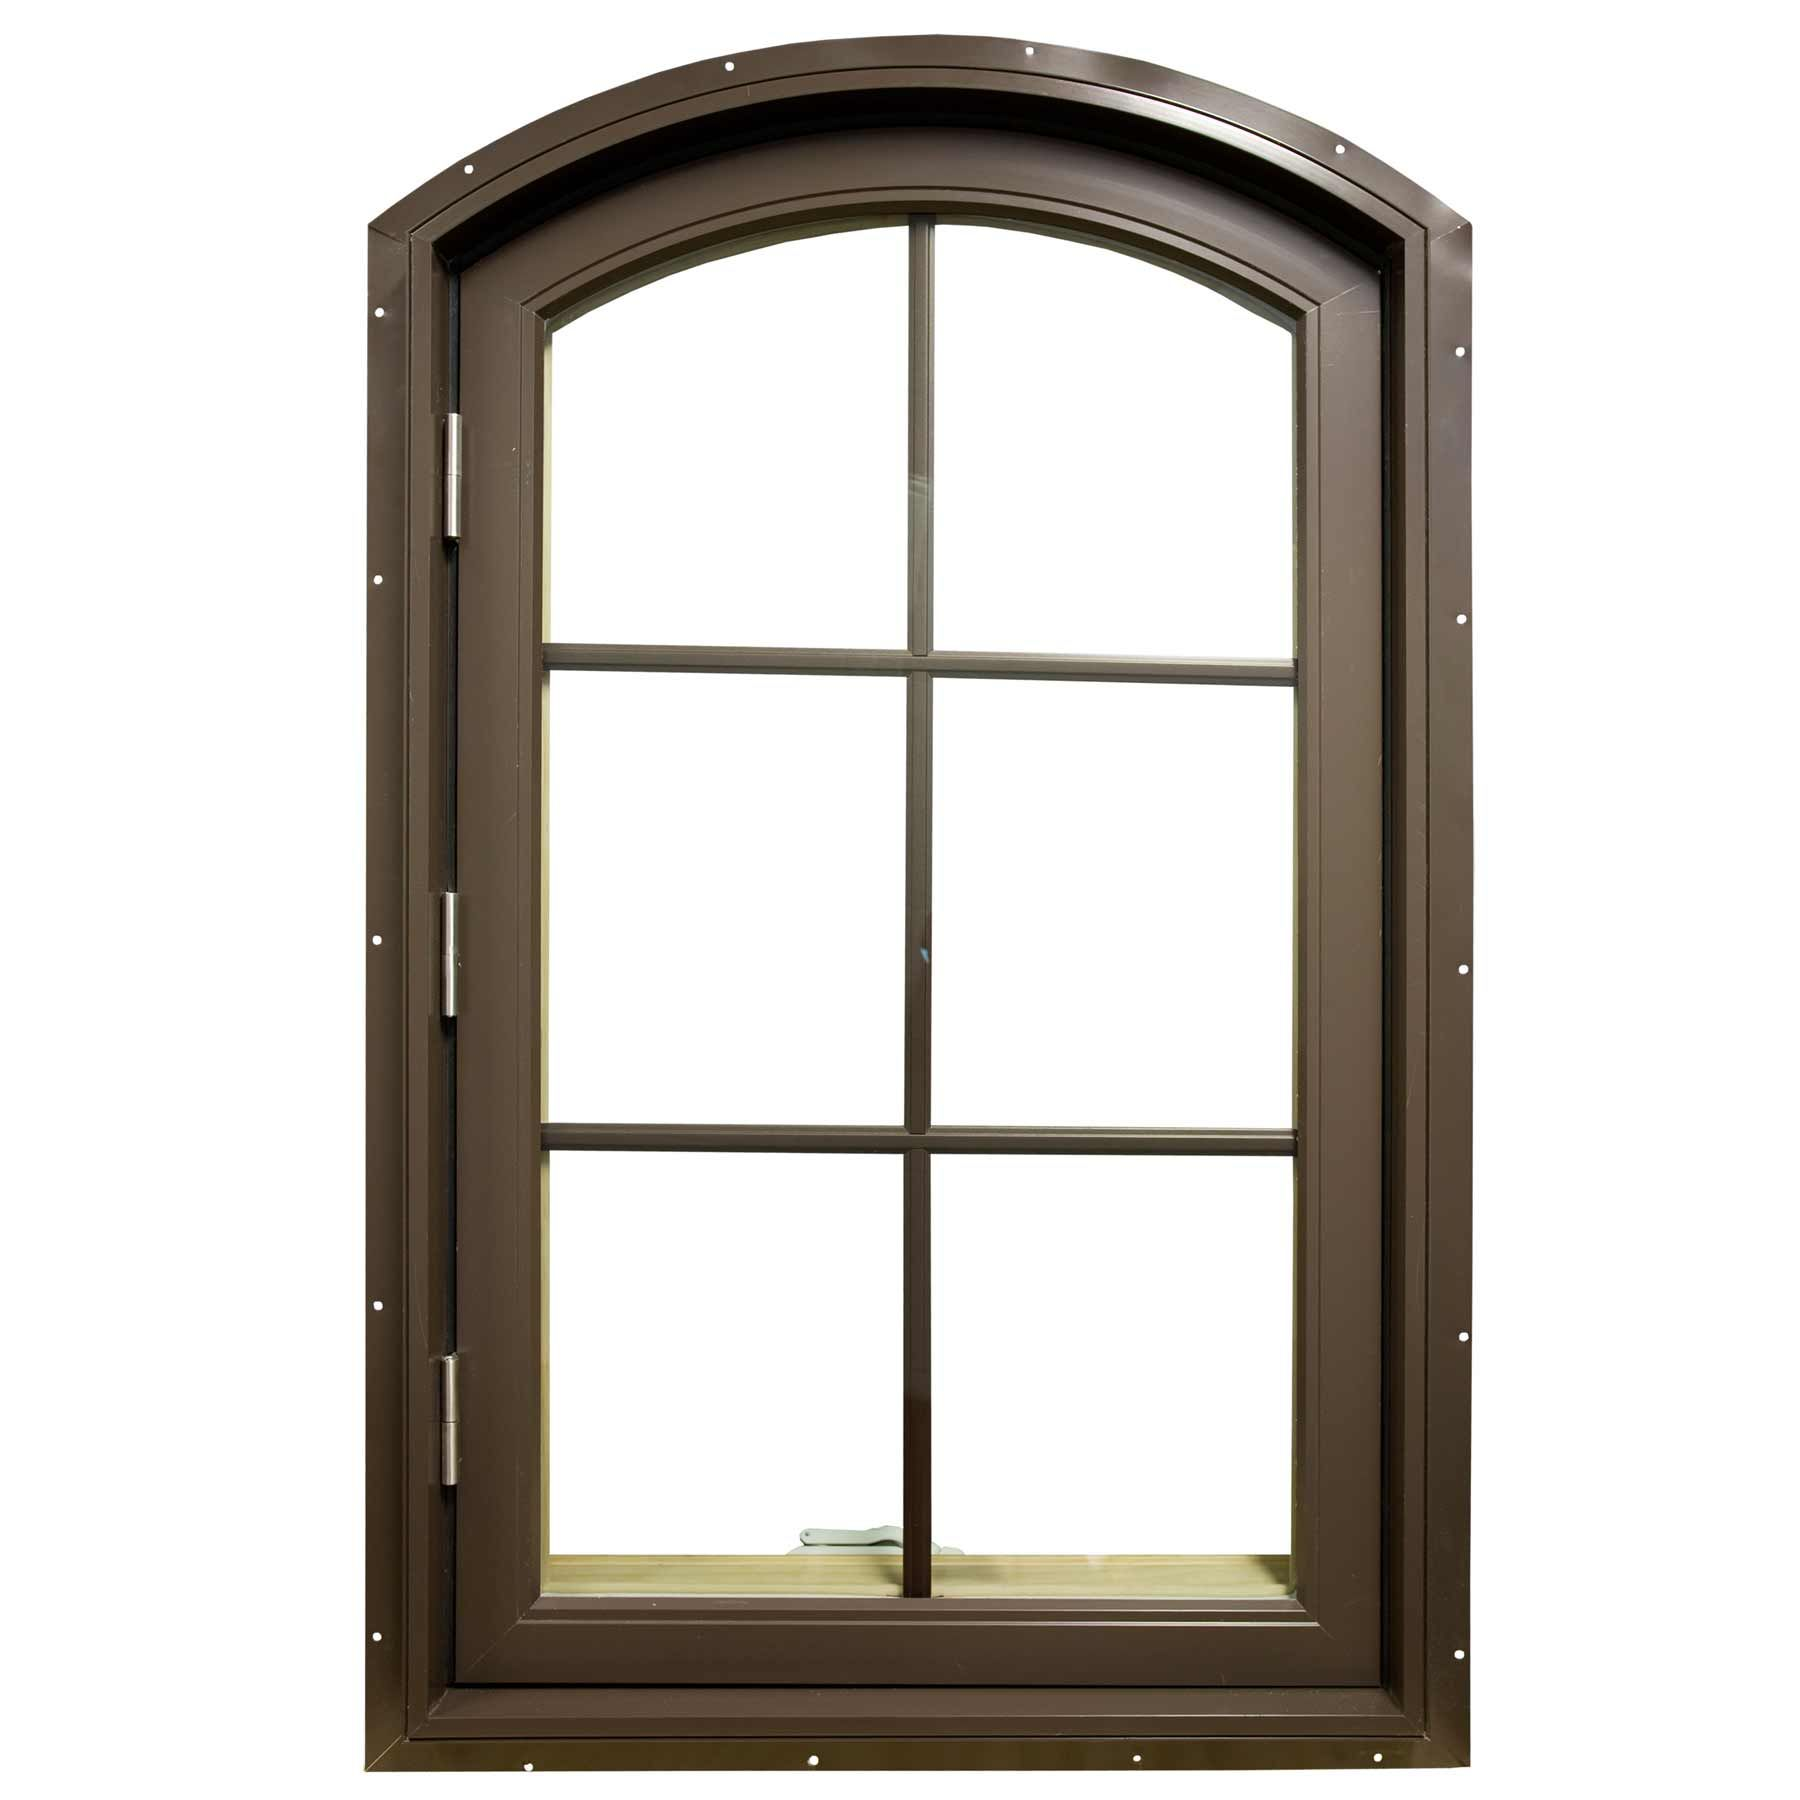 Aluminum casement windows for home feel the home House window layout